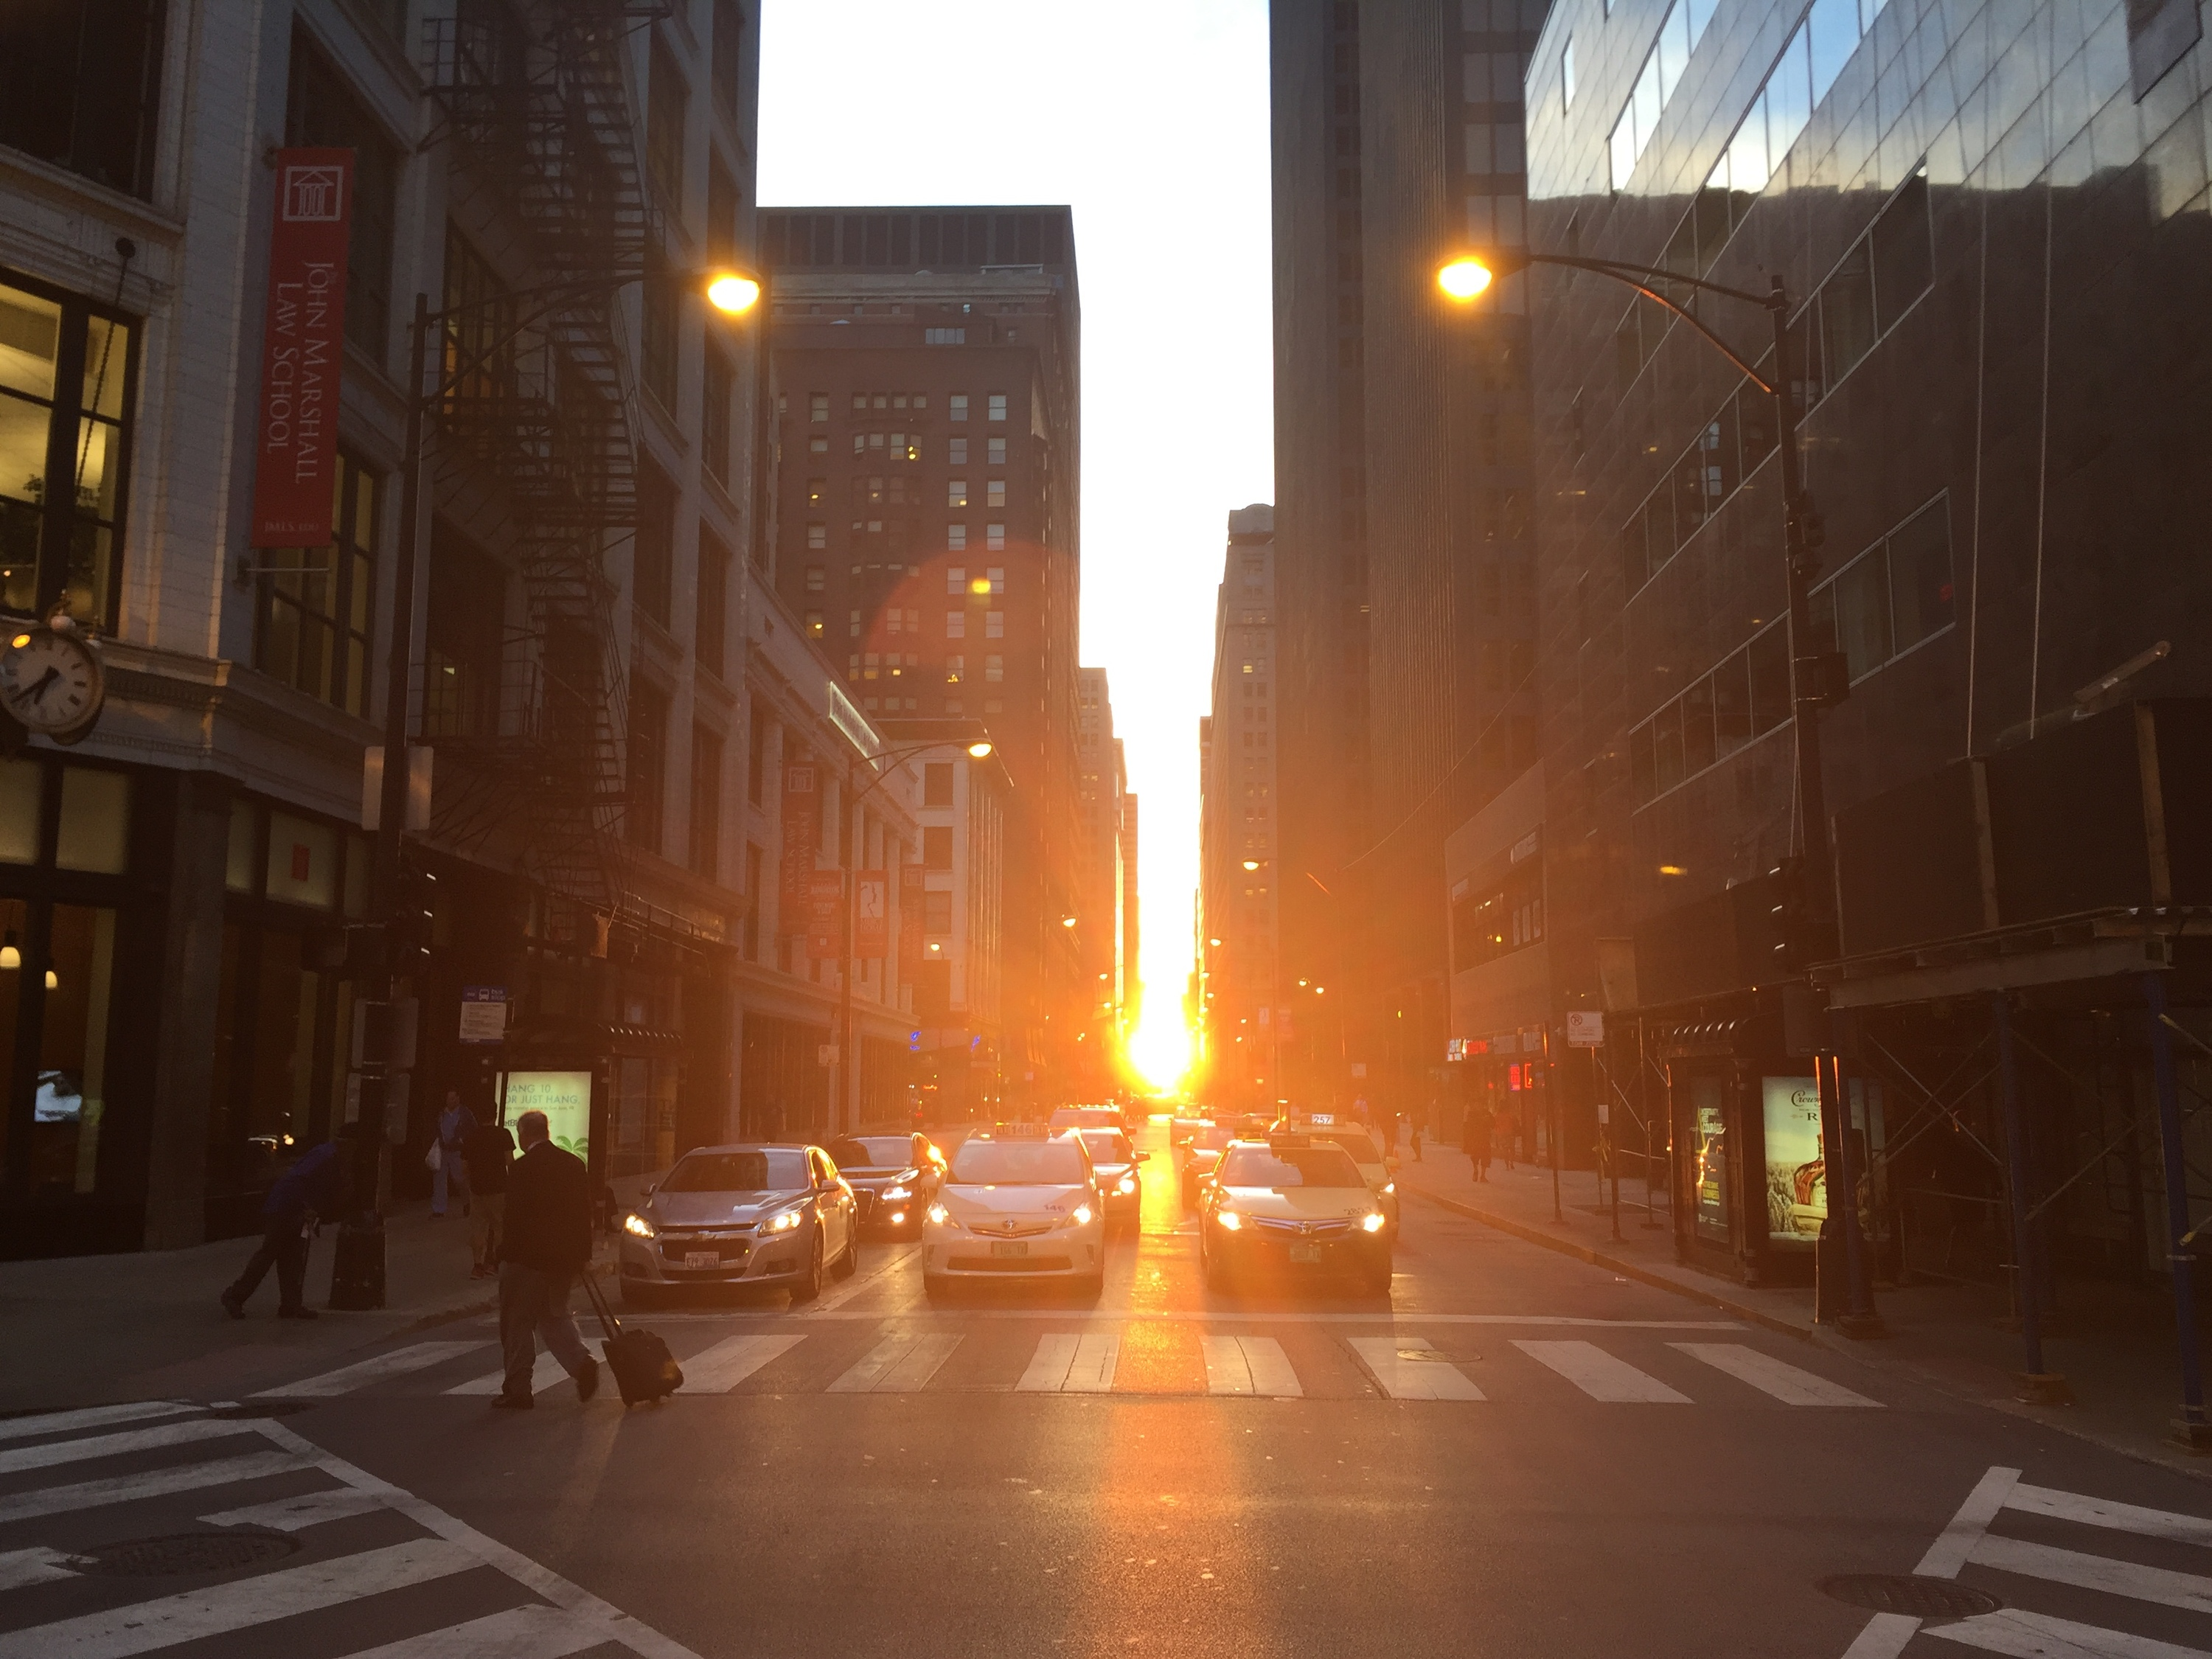 The autumn edition of Chicagohenge shines throughout the city tonight